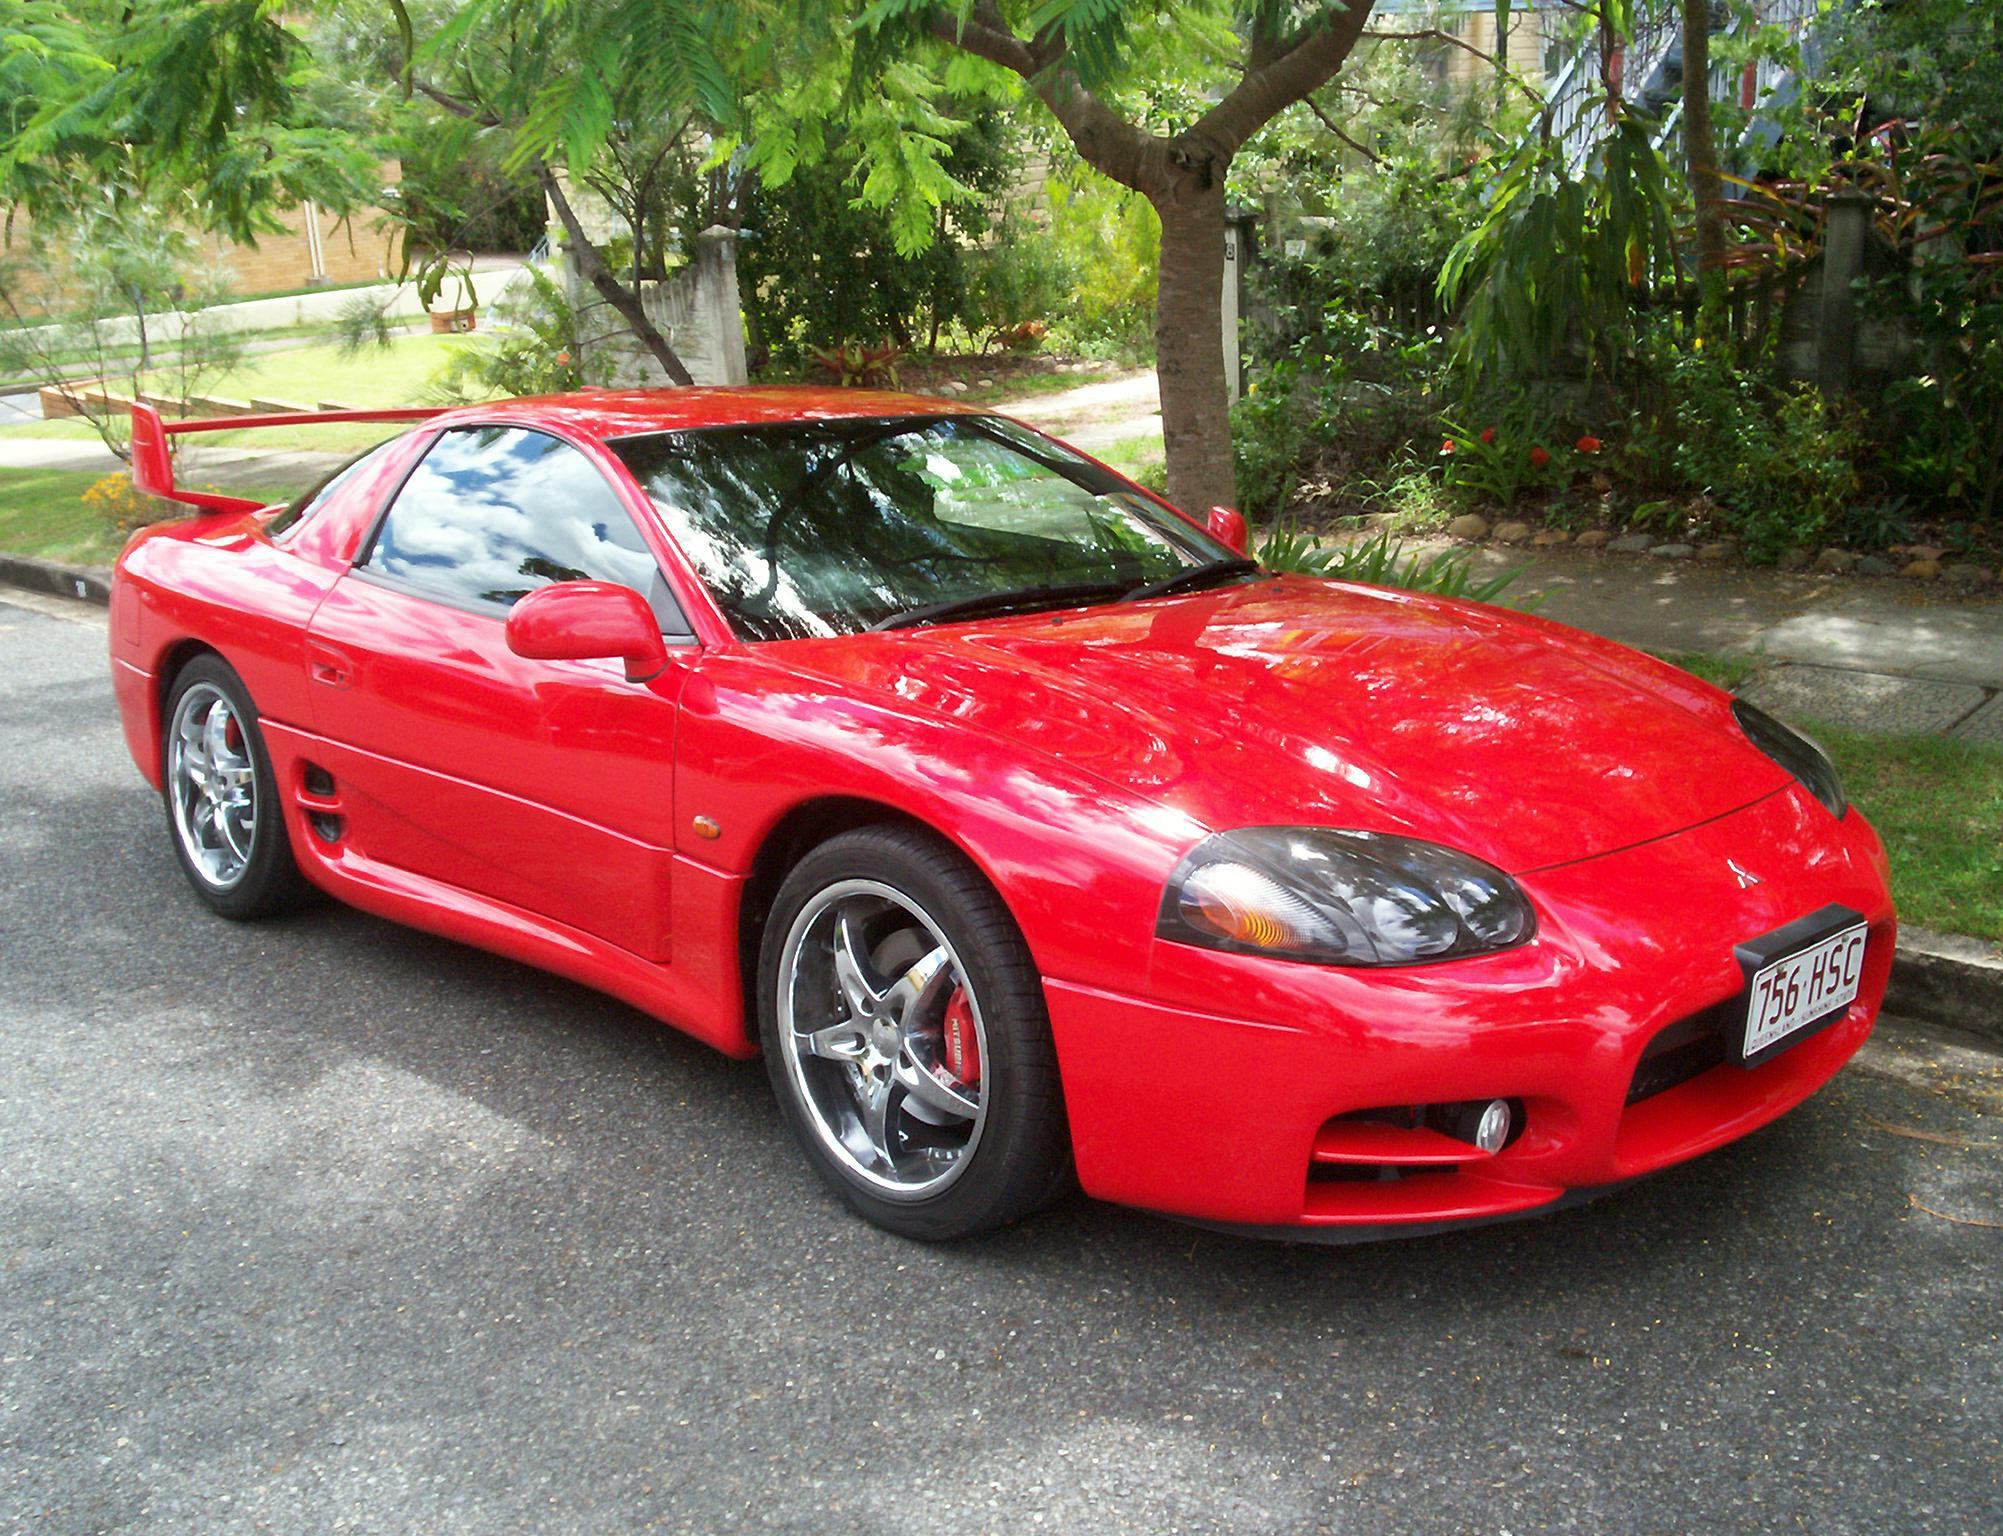 2018 Mitsubishi Gto >> Mitsubishi GTO 4 by Illusions-Play on DeviantArt